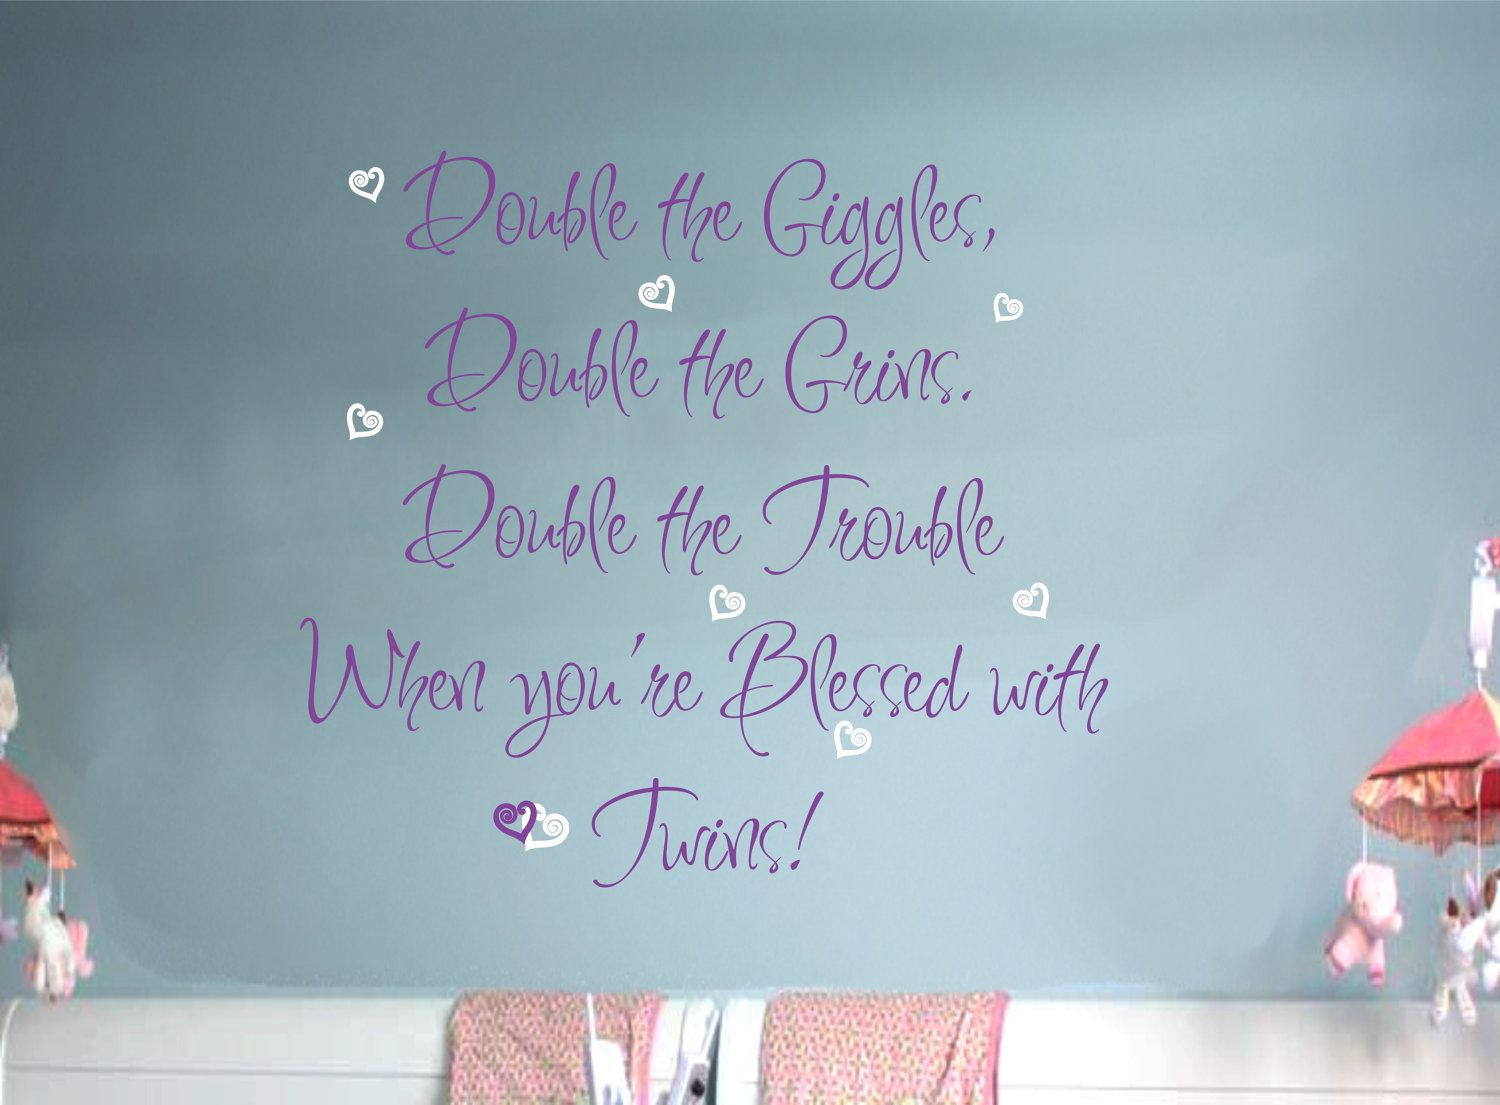 Twins Baby Saying Wall Decal With Hearts Nursery Vinyl Sticker Decor 3 20 00 Via Etsy